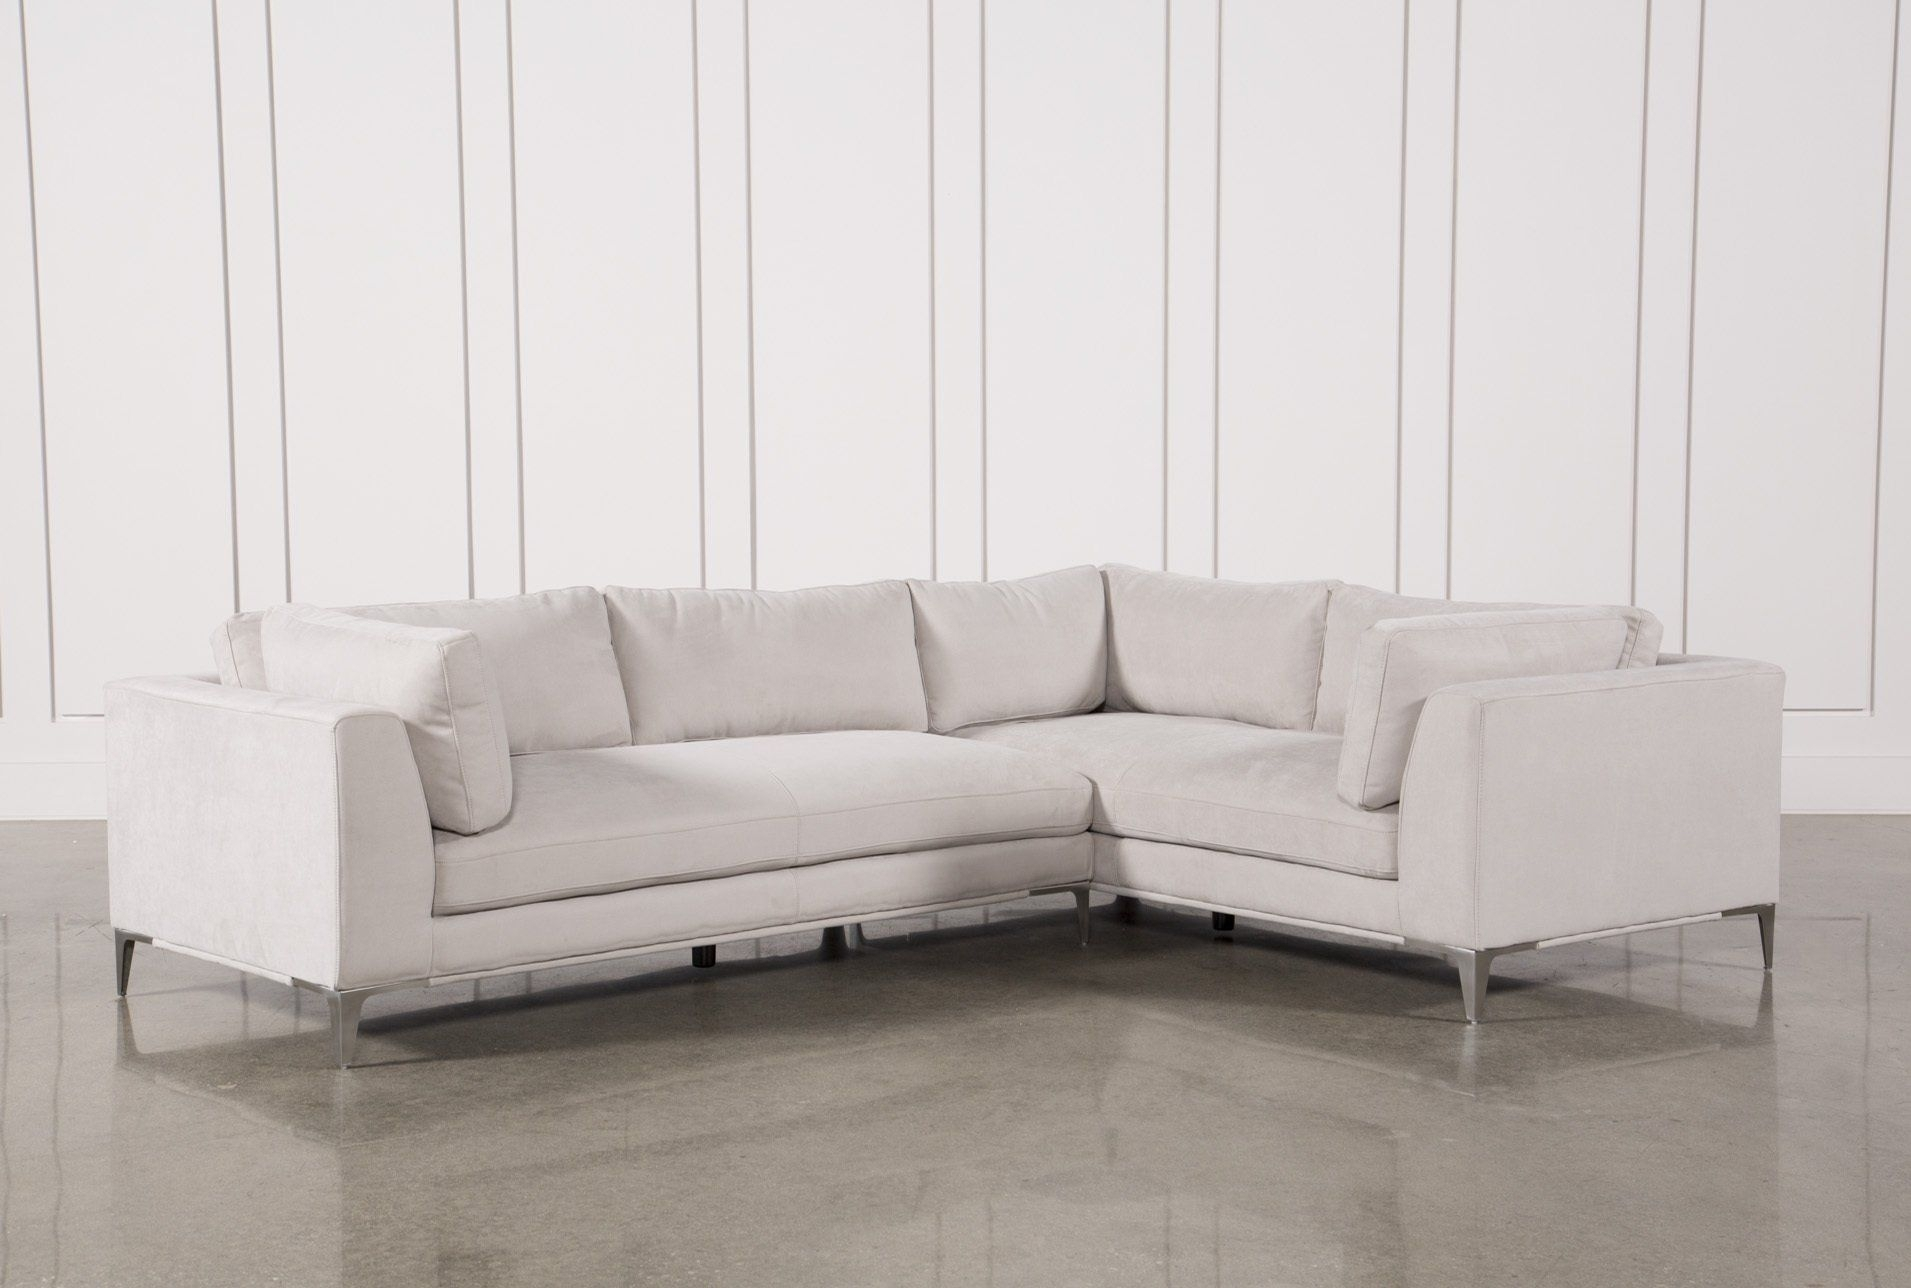 Cosmos Grey 2 Piece Sectional W/laf Chaise | Quilling | Pinterest throughout Cosmos Grey 2 Piece Sectionals With Raf Chaise (Image 7 of 30)